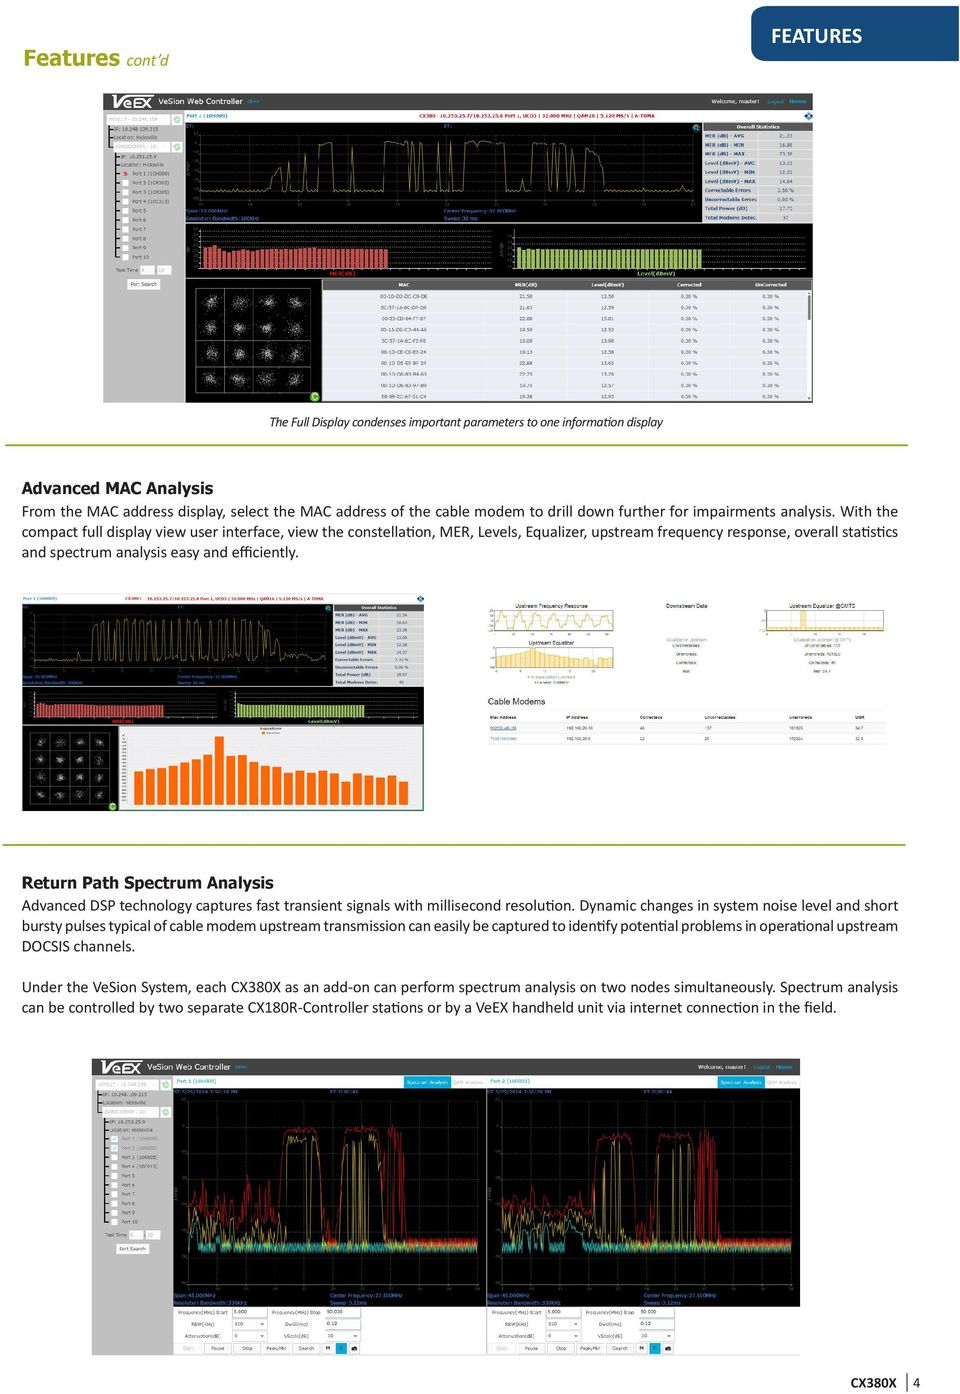 With the compact full display view user interface, view the constellation, MER, Levels, Equalizer, upstream frequency response, overall statistics and spectrum analysis easy and efficiently.